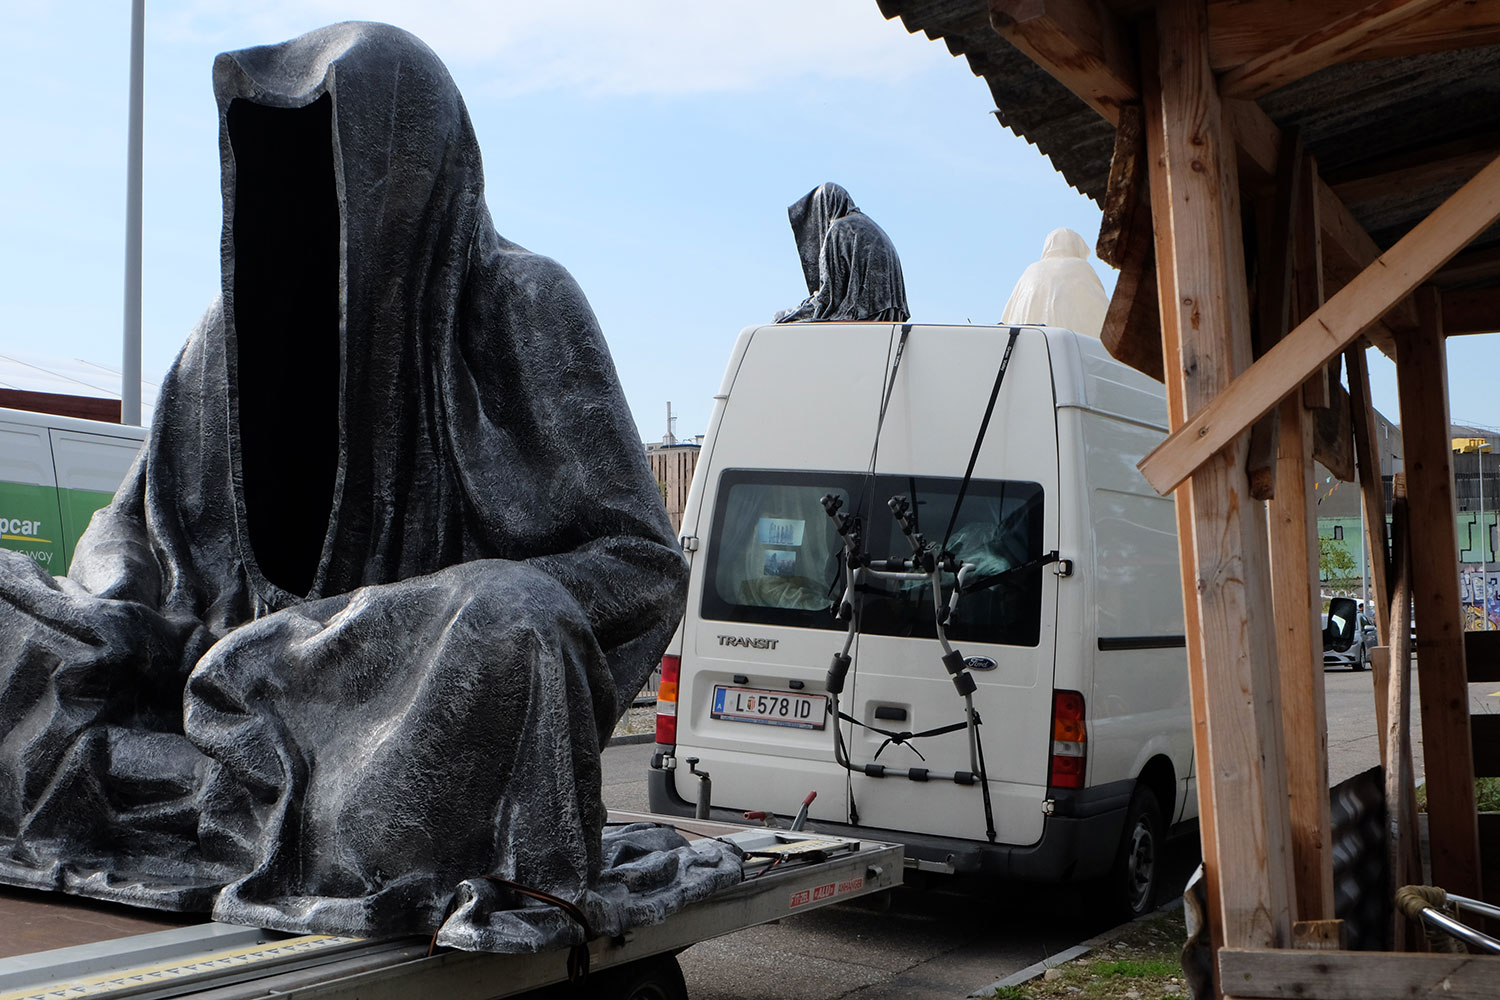 artbasel-swiss-scope-art-ghost-car-guardians-of-time-manfred-kili-kielnhofer-large-scale-contemporary-art-design-sculpture-statue-arts-arte-4283